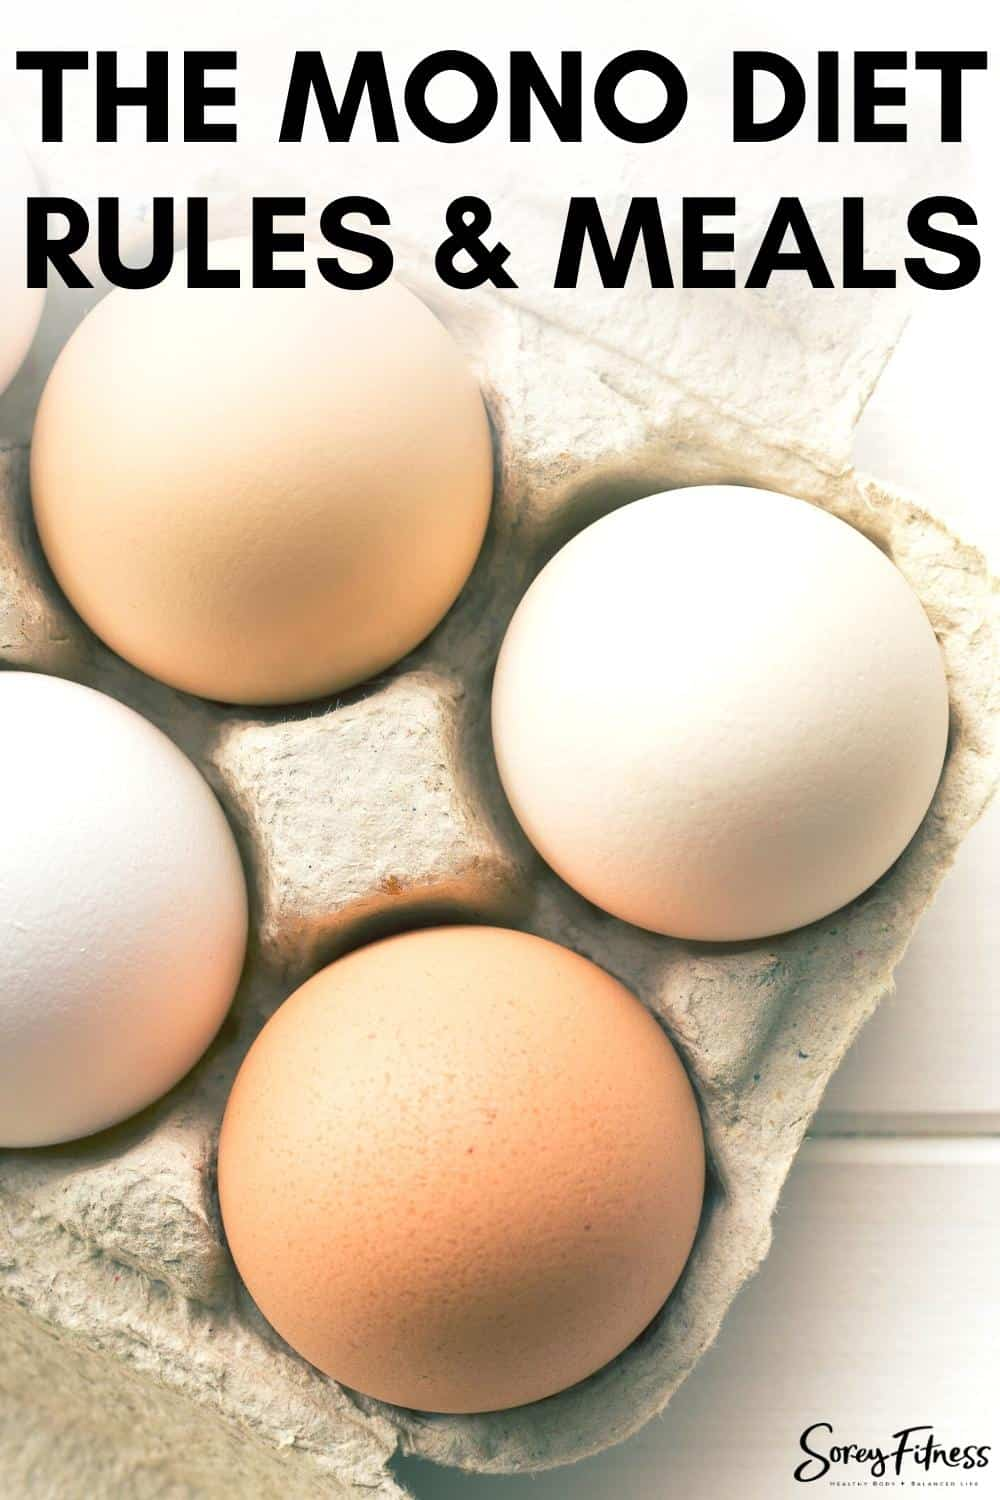 the mono diet rules and meals with a picture of eggs